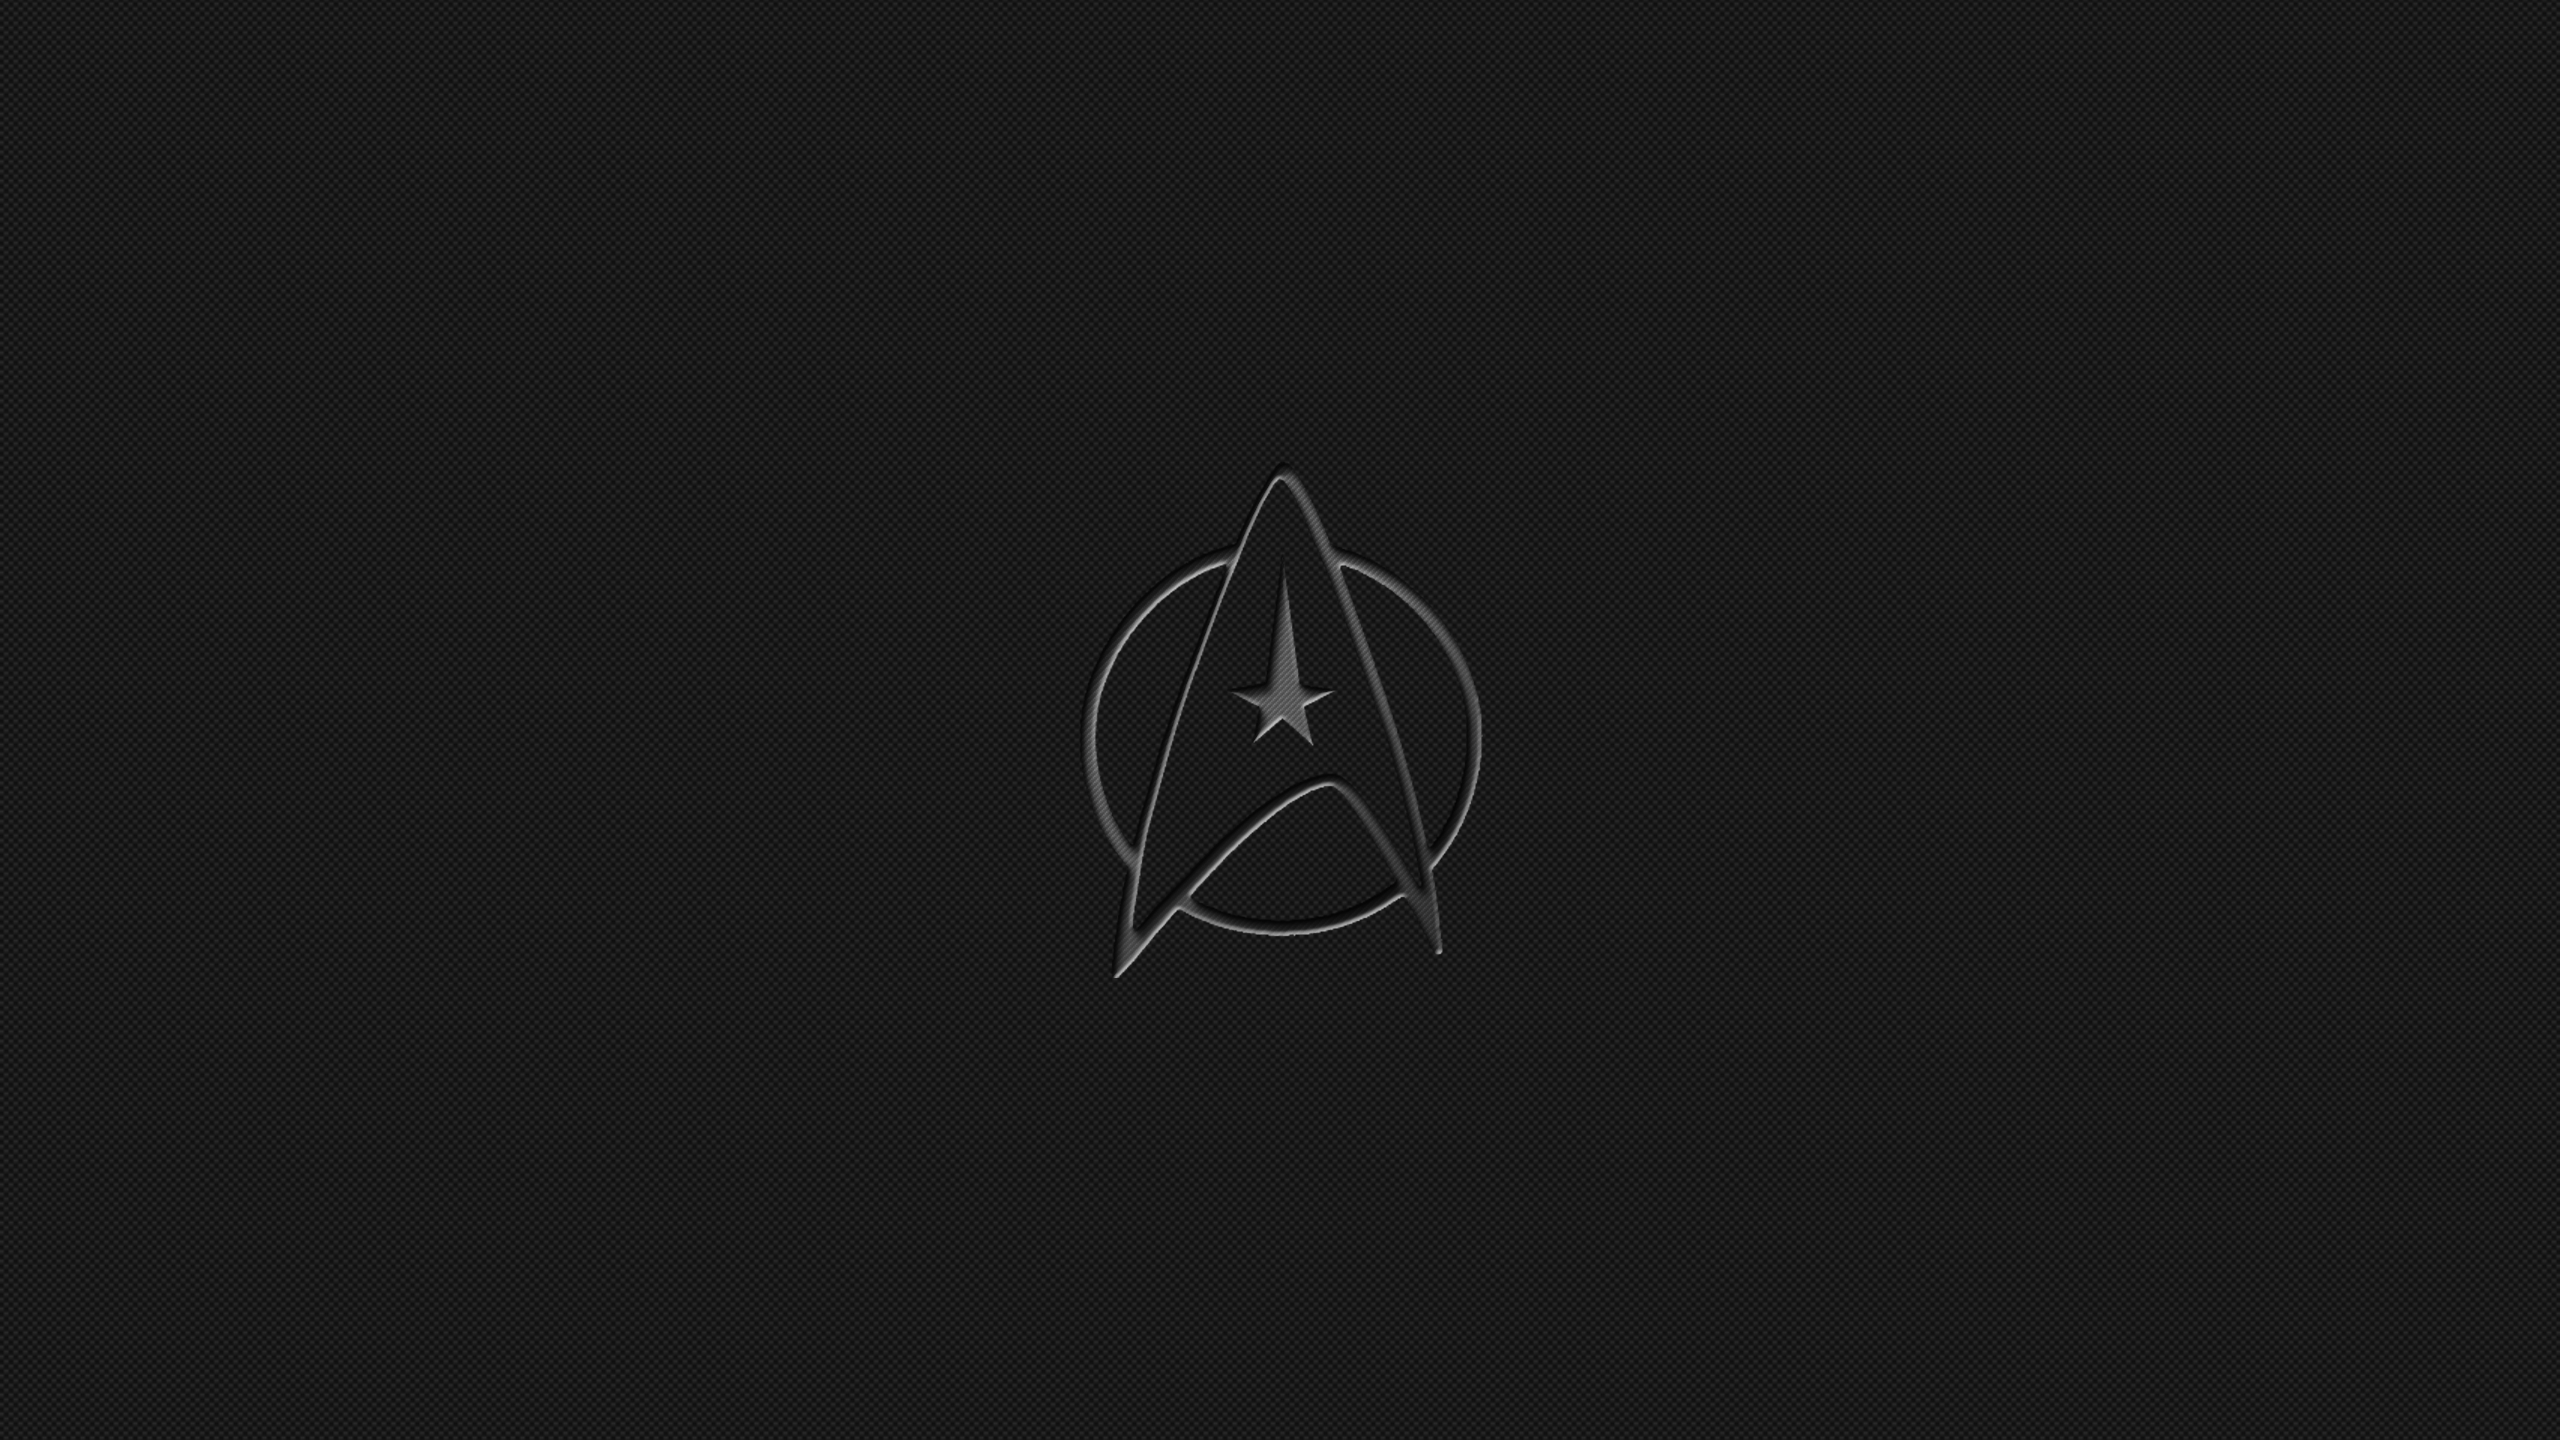 HQ RES Wallpapers of Star Trek